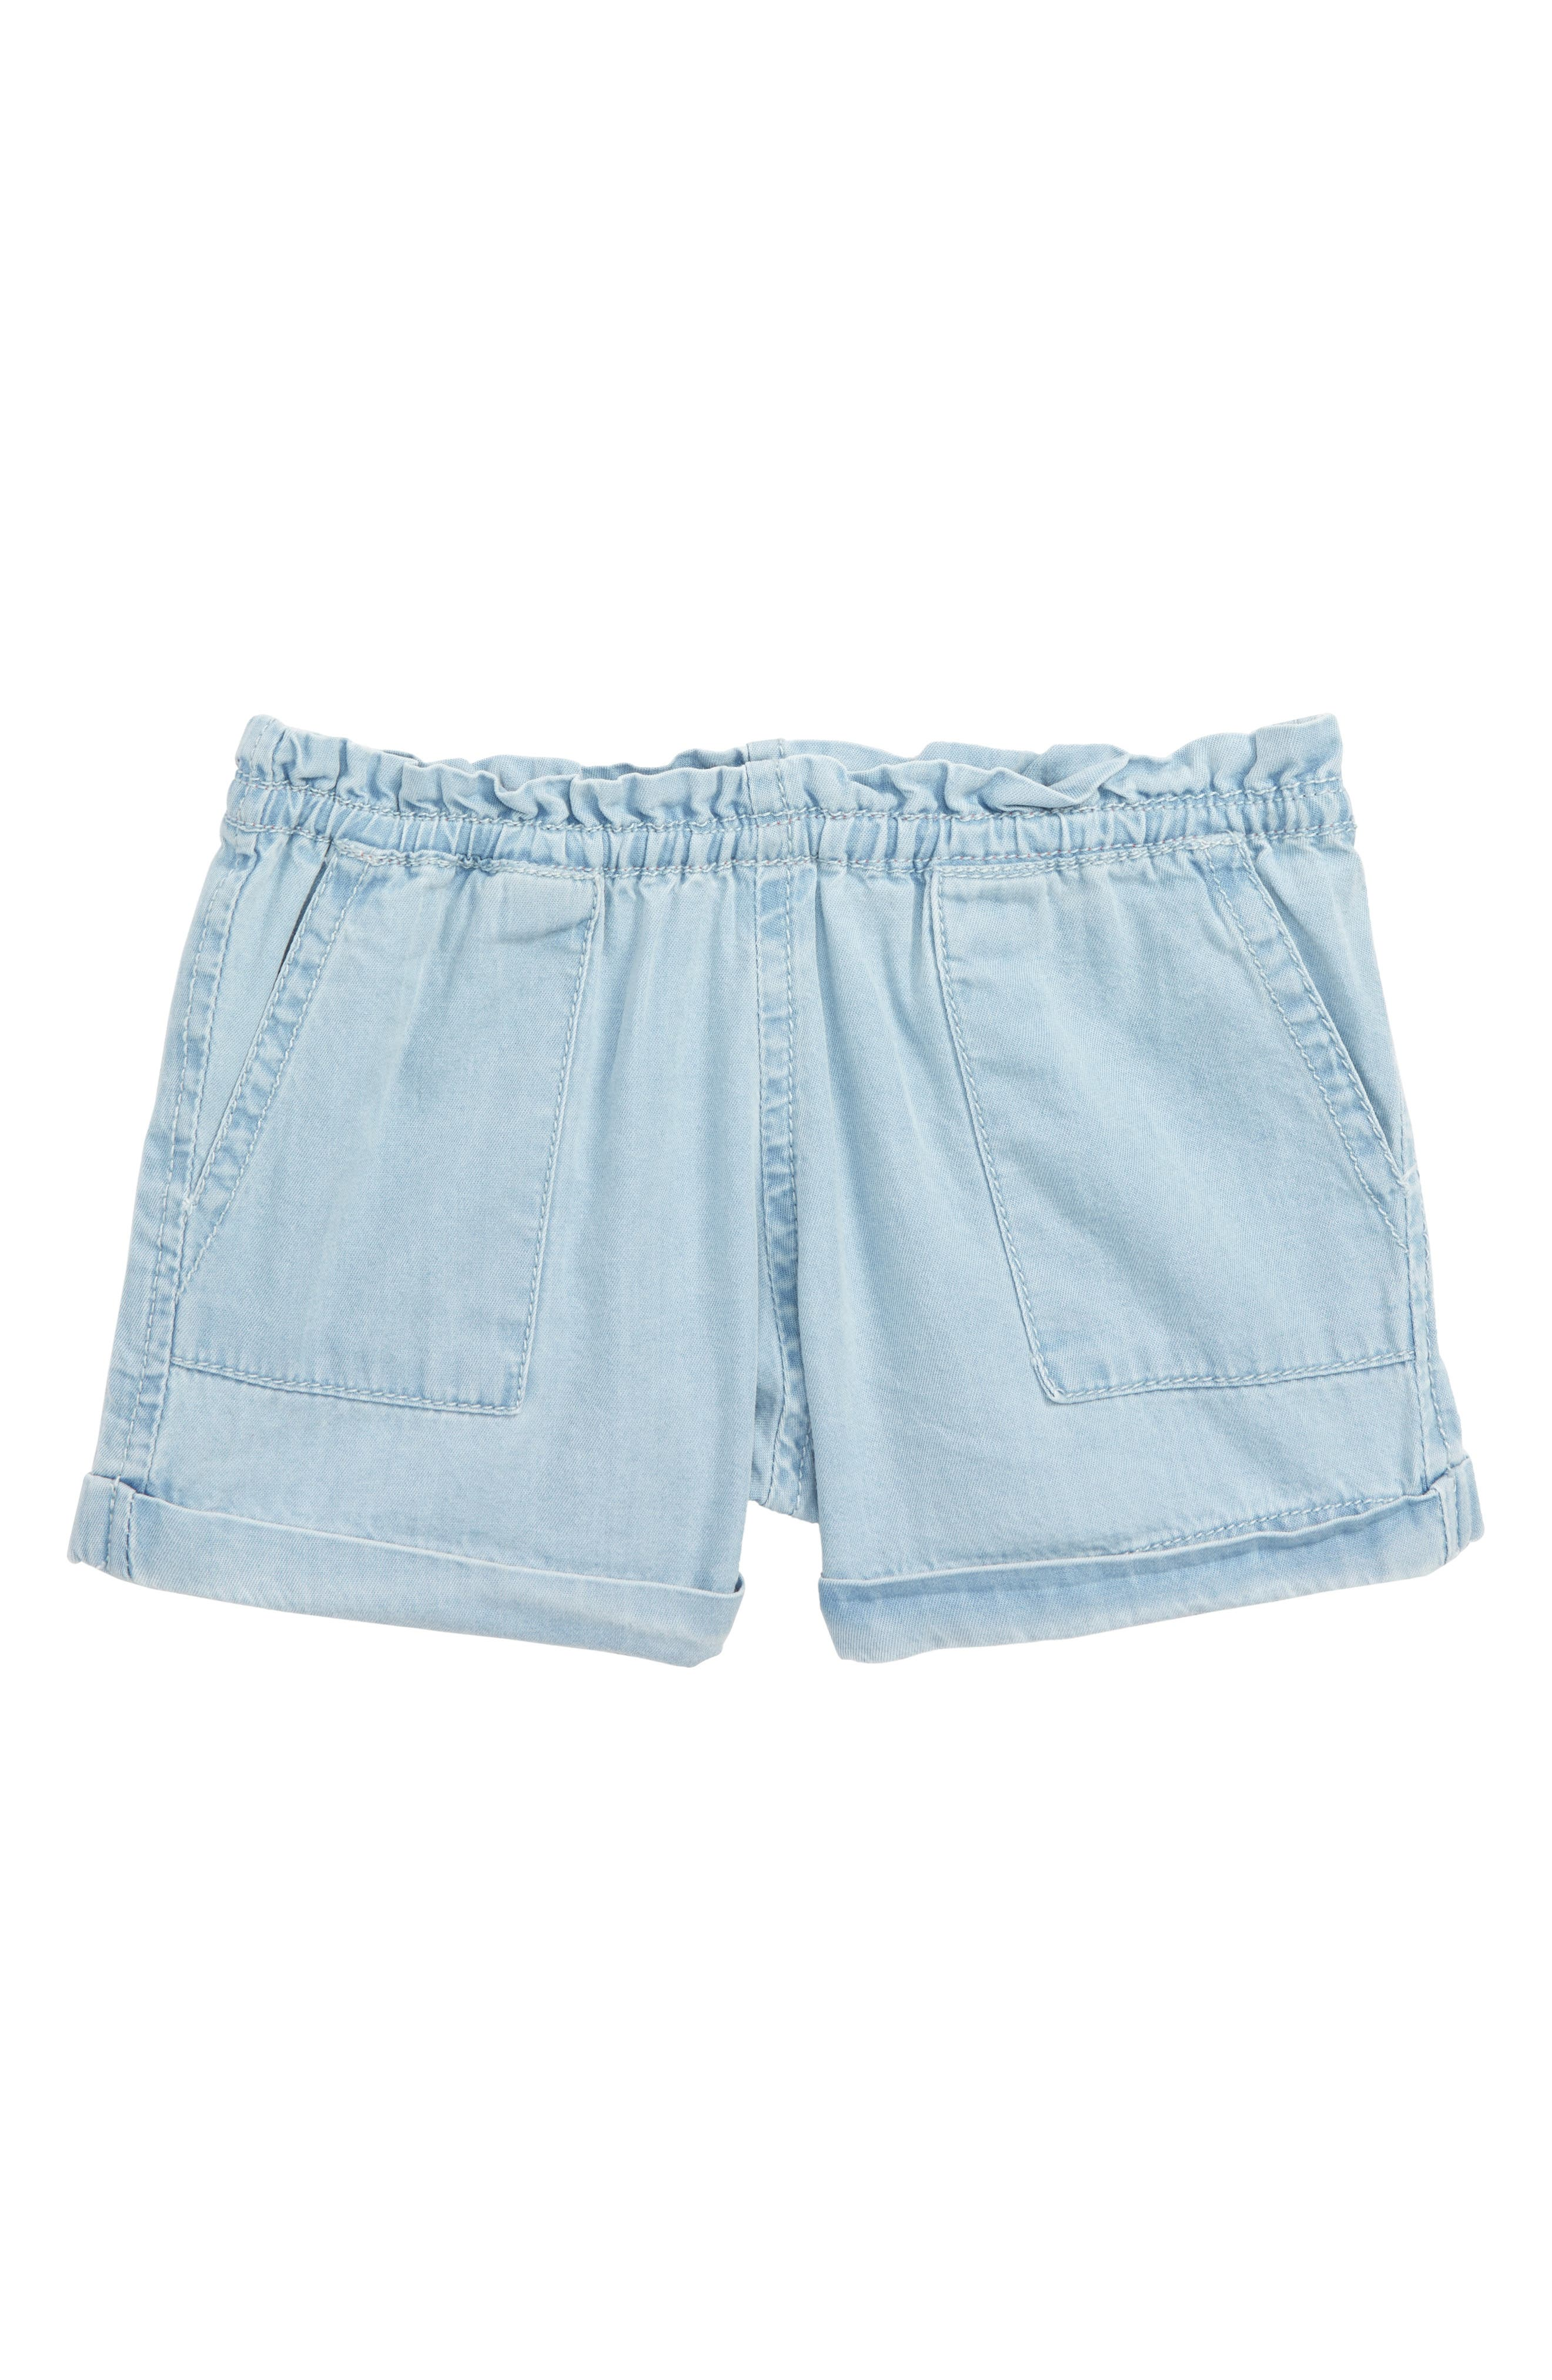 Jojo Chambray Shorts,                         Main,                         color, 450